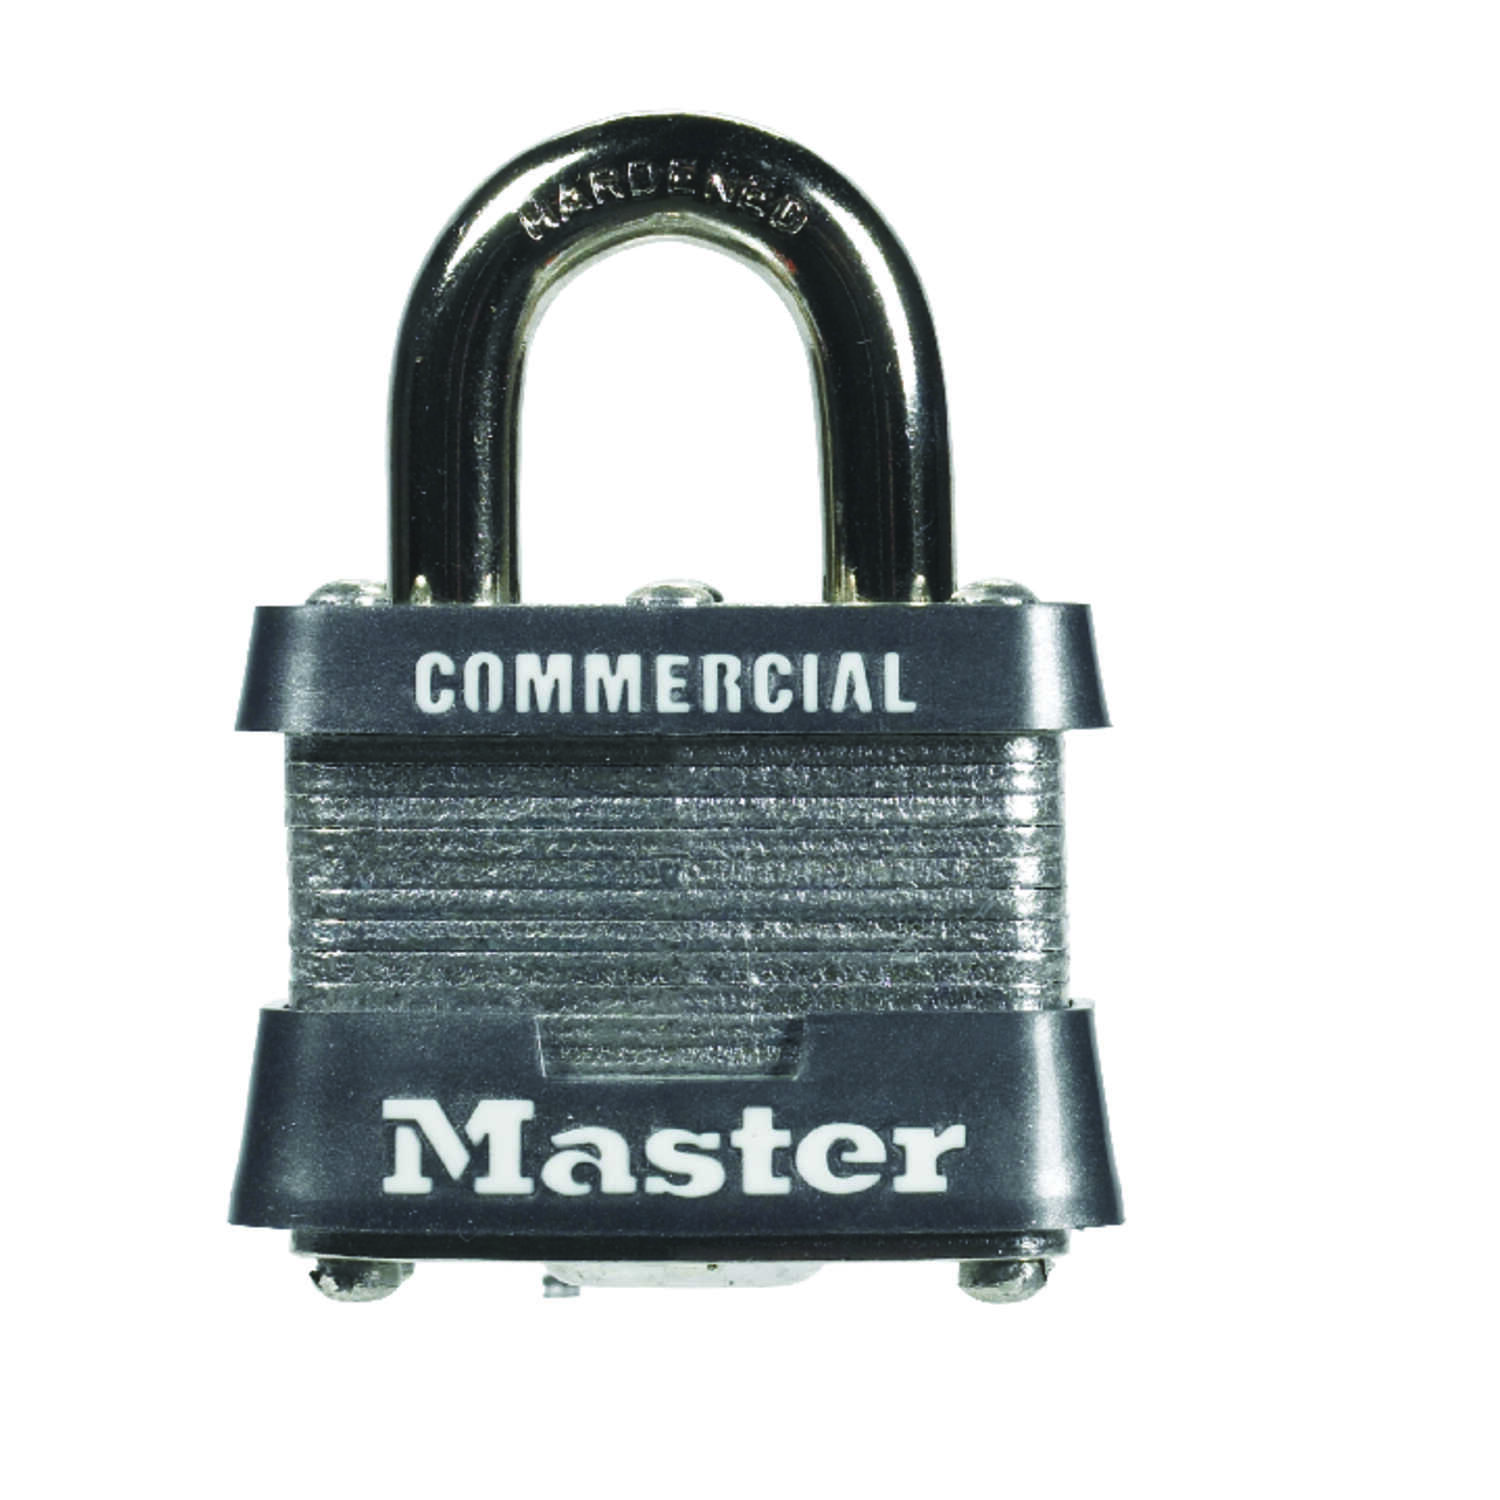 Master Lock  1-5/16 in. H x 1-5/8 in. W x 1-9/16 in. L Laminated Steel  4-Pin Cylinder  Padlock  1 p